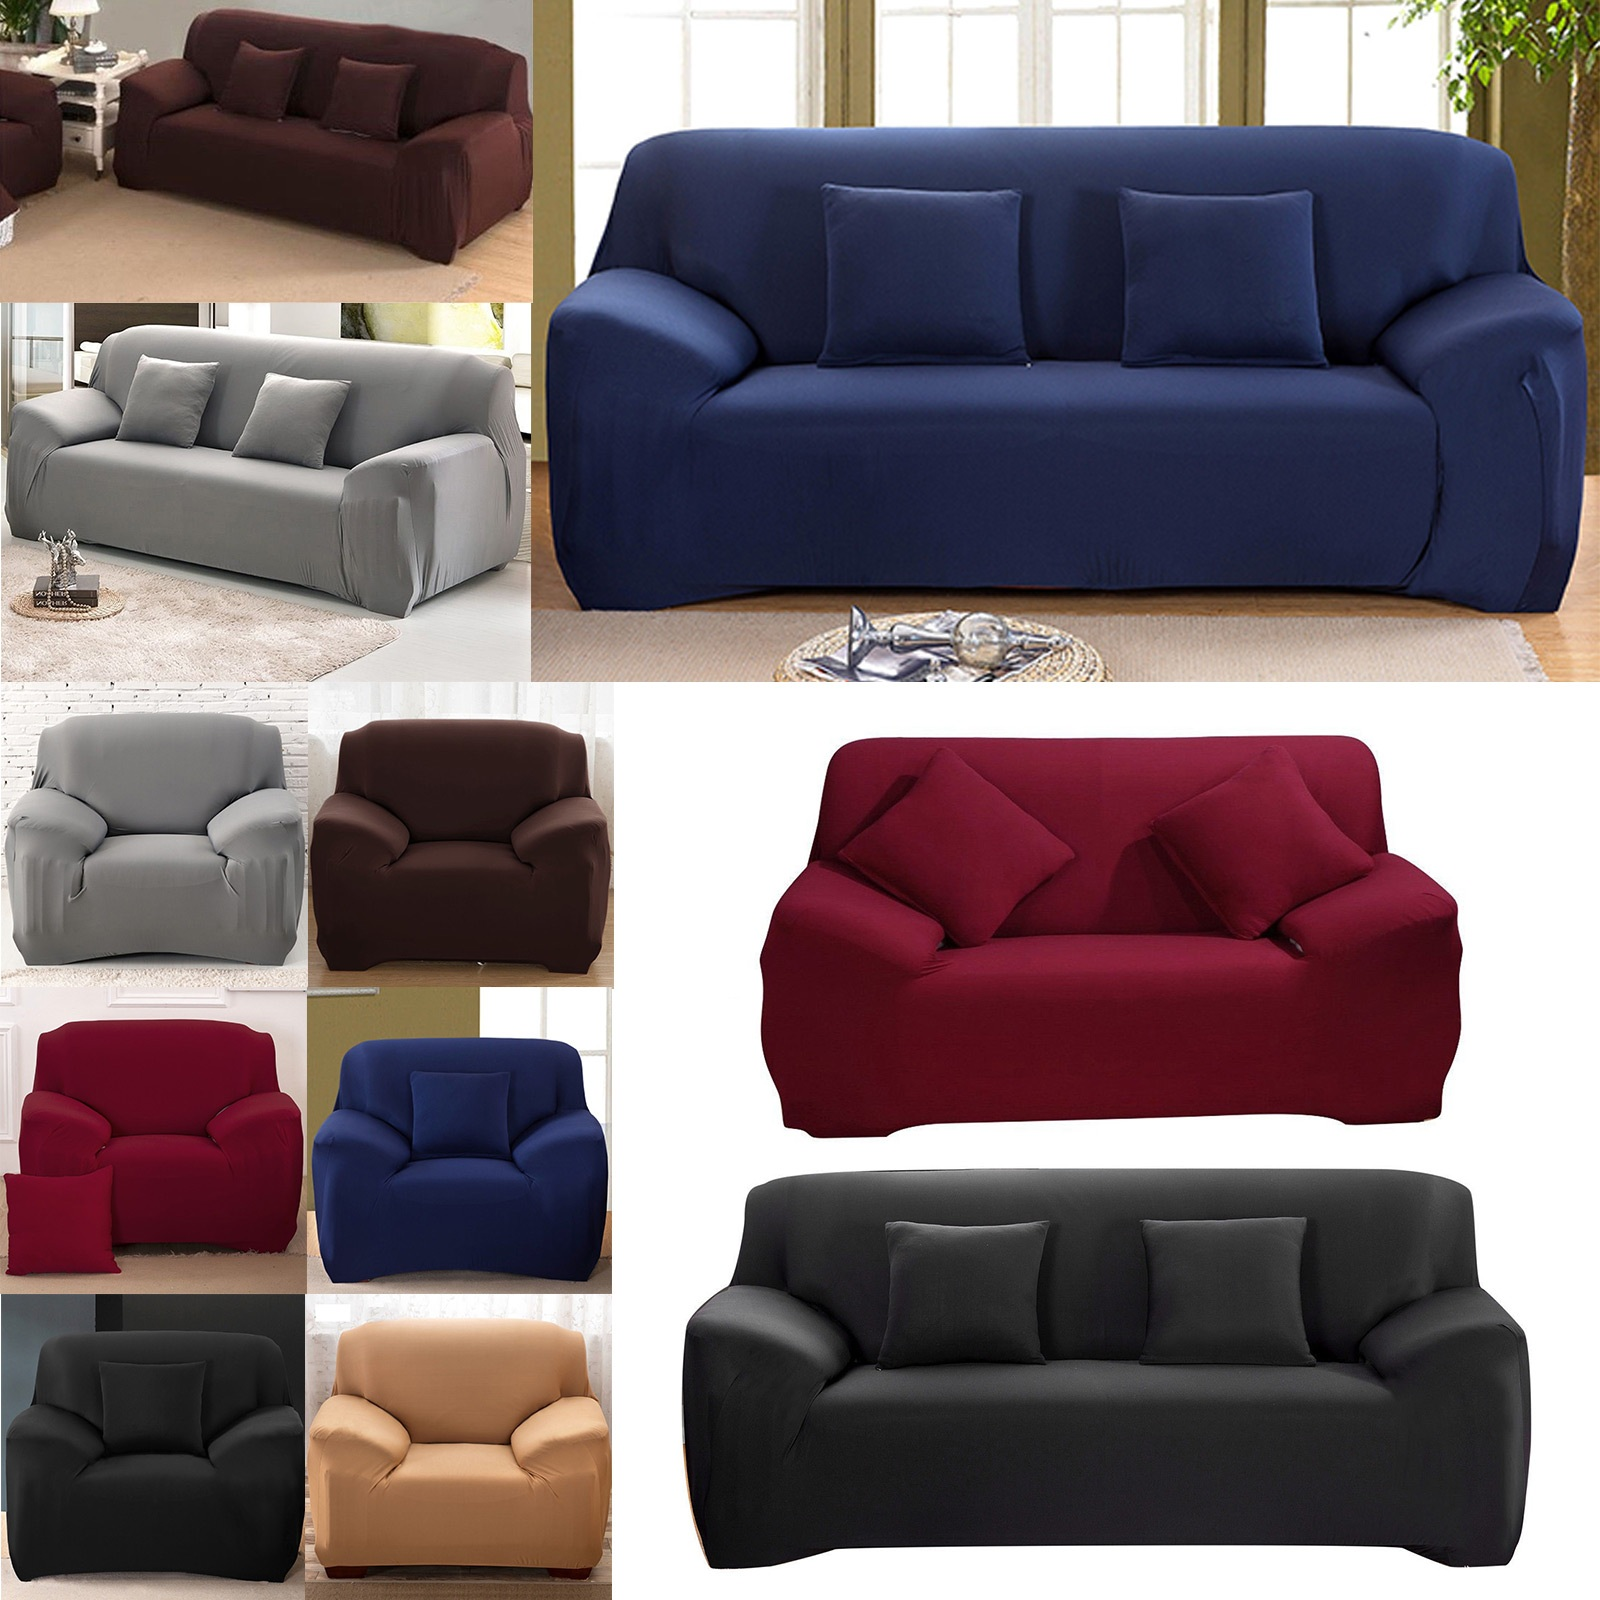 1 2 3 seater easy sofa soft couch slipcover stretch covers elastic fit protector ebay. Black Bedroom Furniture Sets. Home Design Ideas